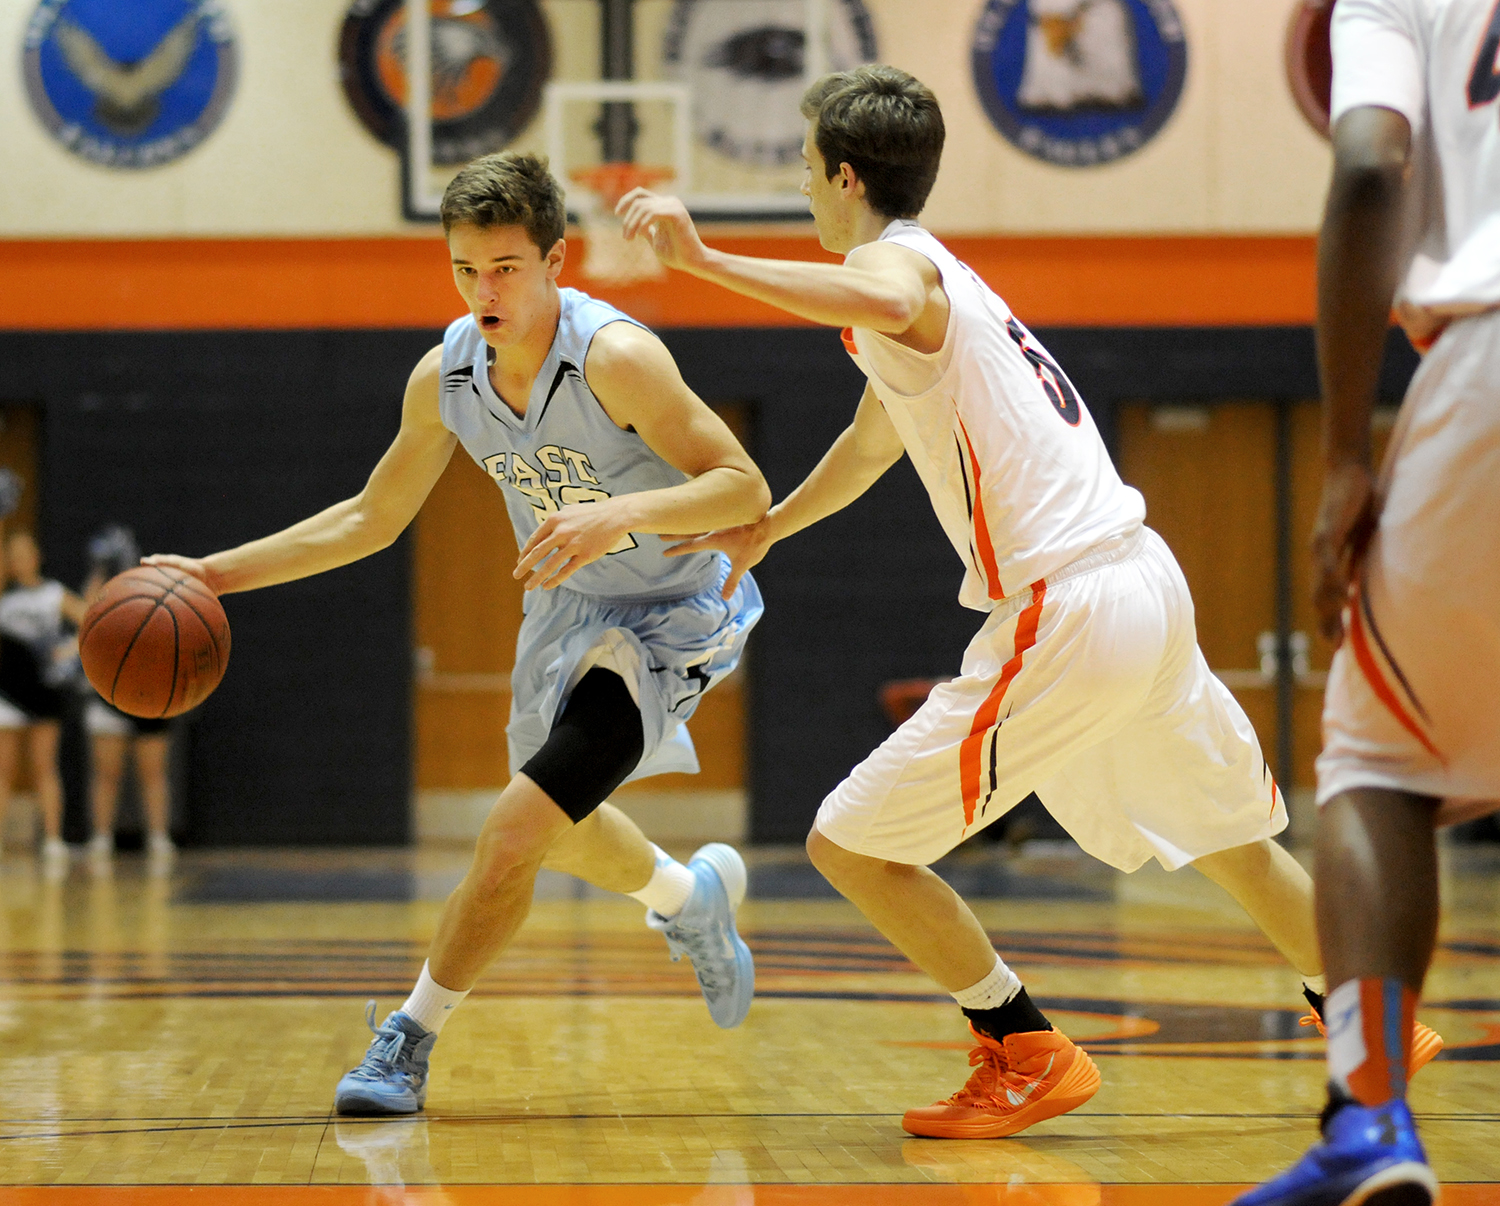 Gallery: Boys' Basketball vs. Olathe East